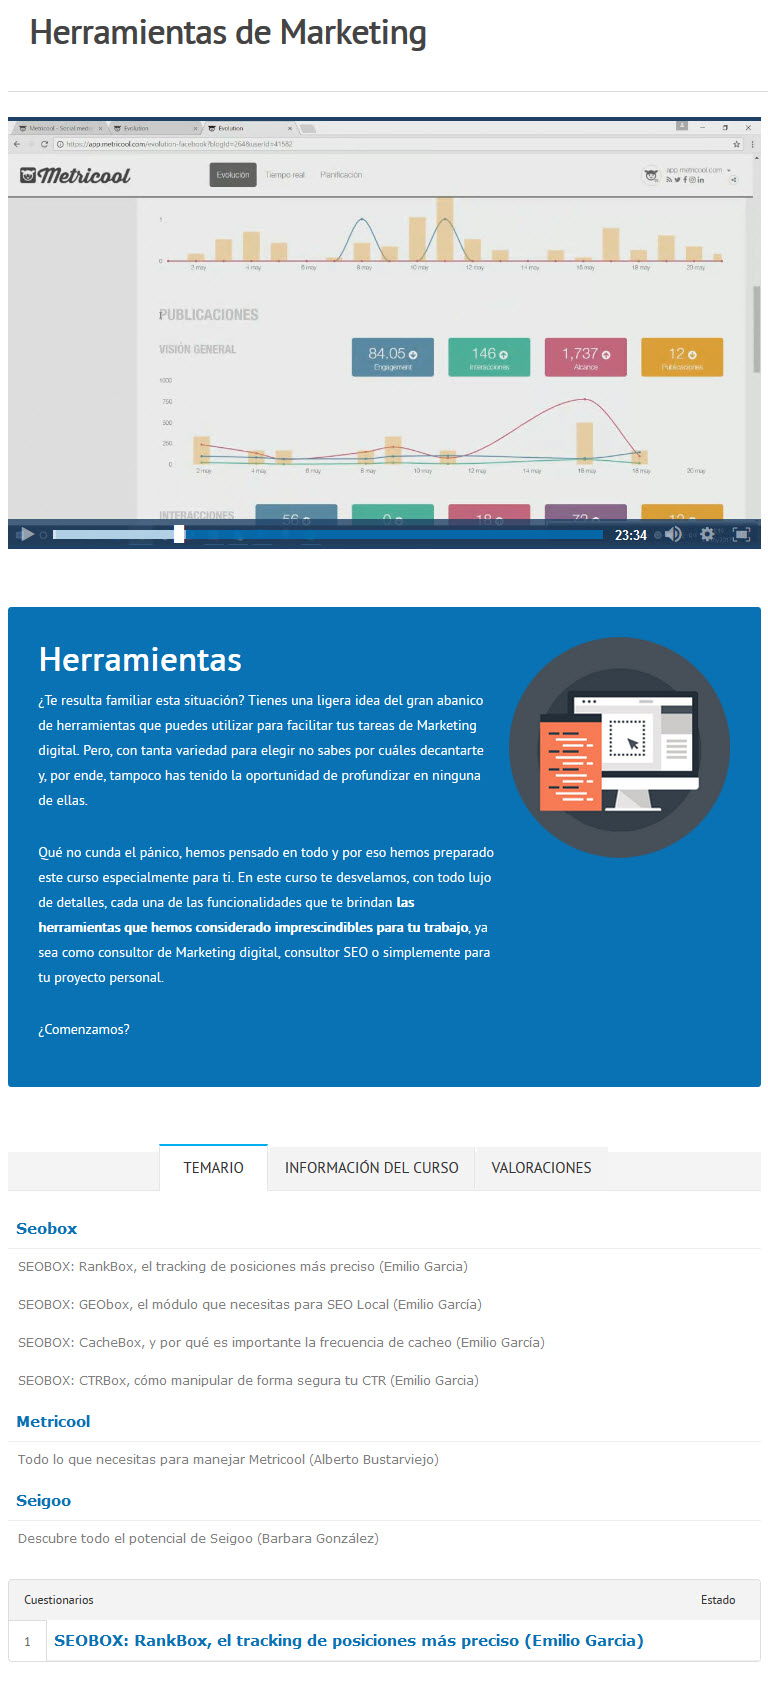 Herramientas de Marketing